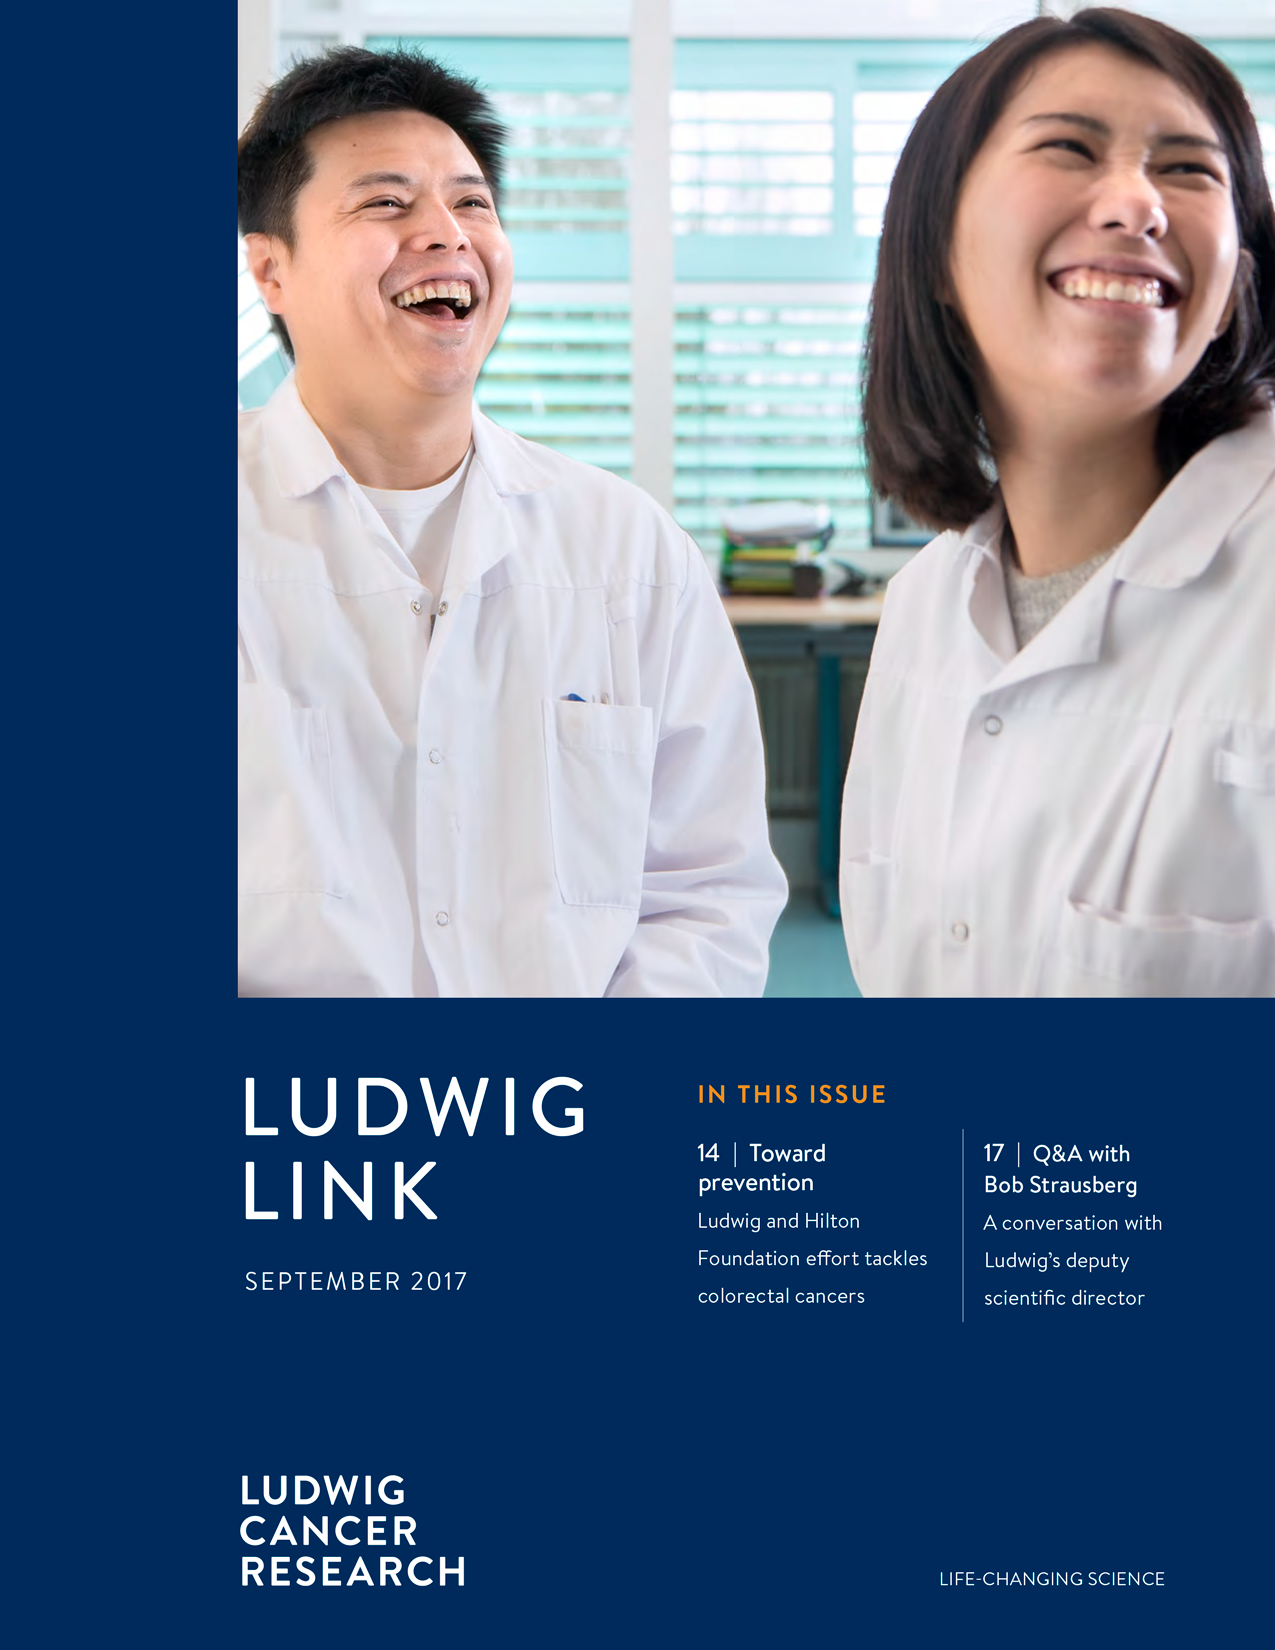 Ludwig LInk September 2017 cover